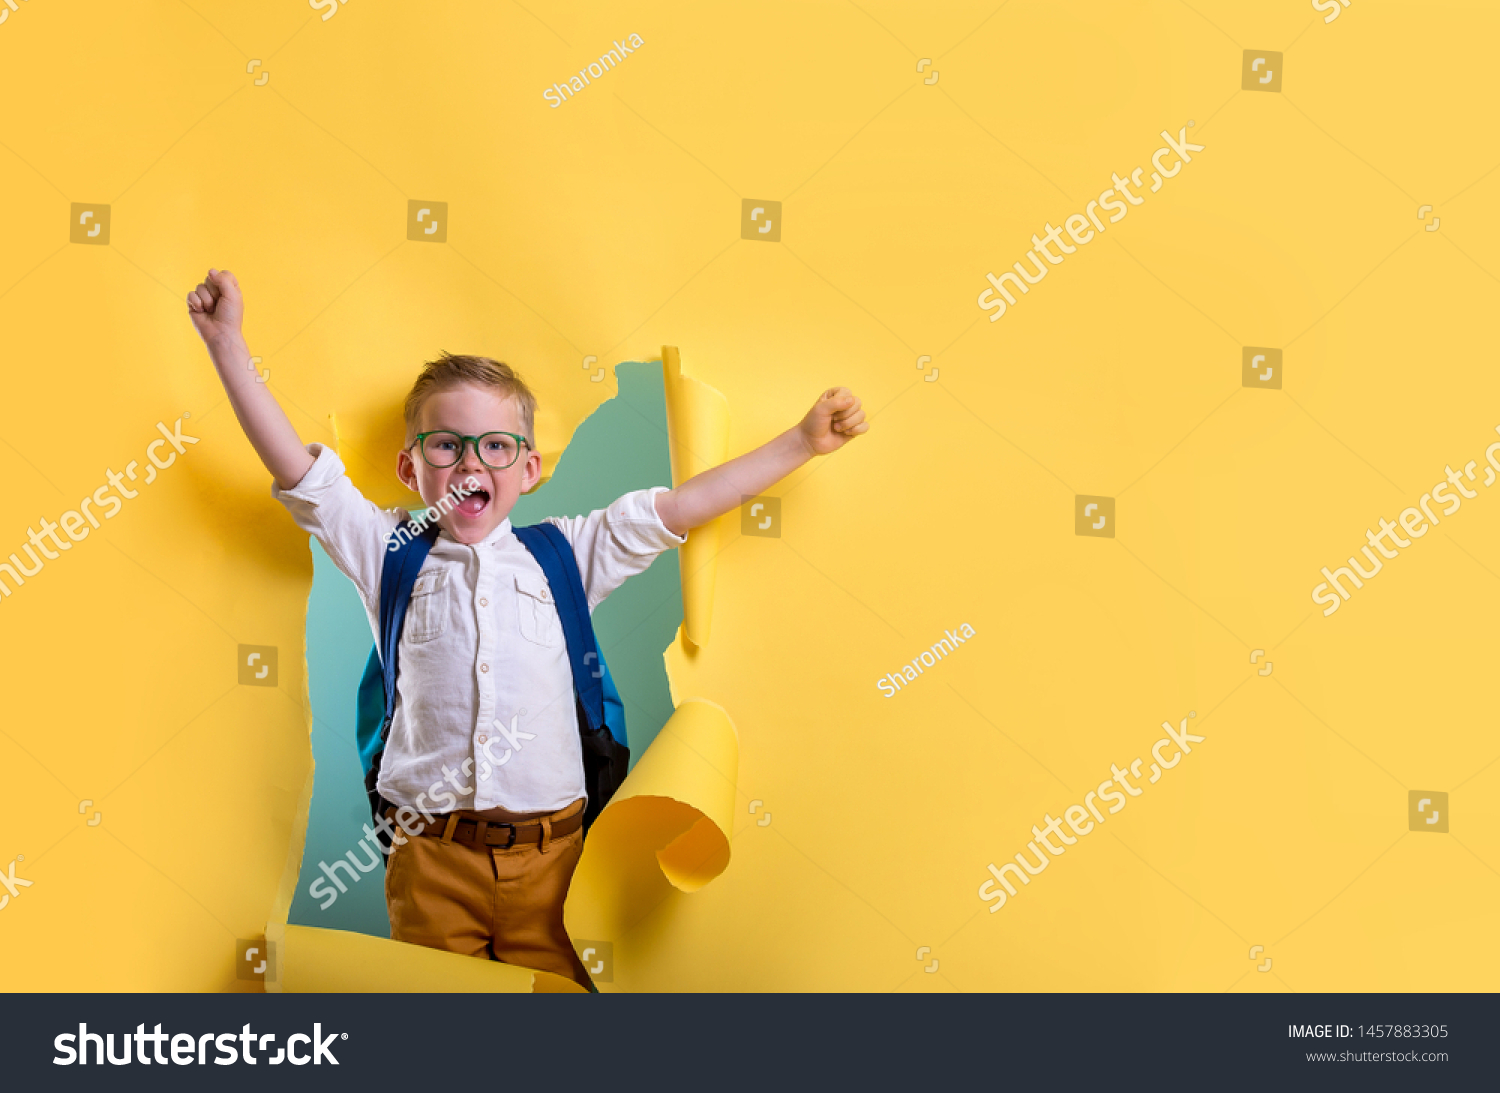 Child boy with book and bag breaking through yellow paper wall. Happy  smiling kid go back to school, kindergarten. Success, motivation, winner, genius concept. Little kid dreaming to be superhero #1457883305